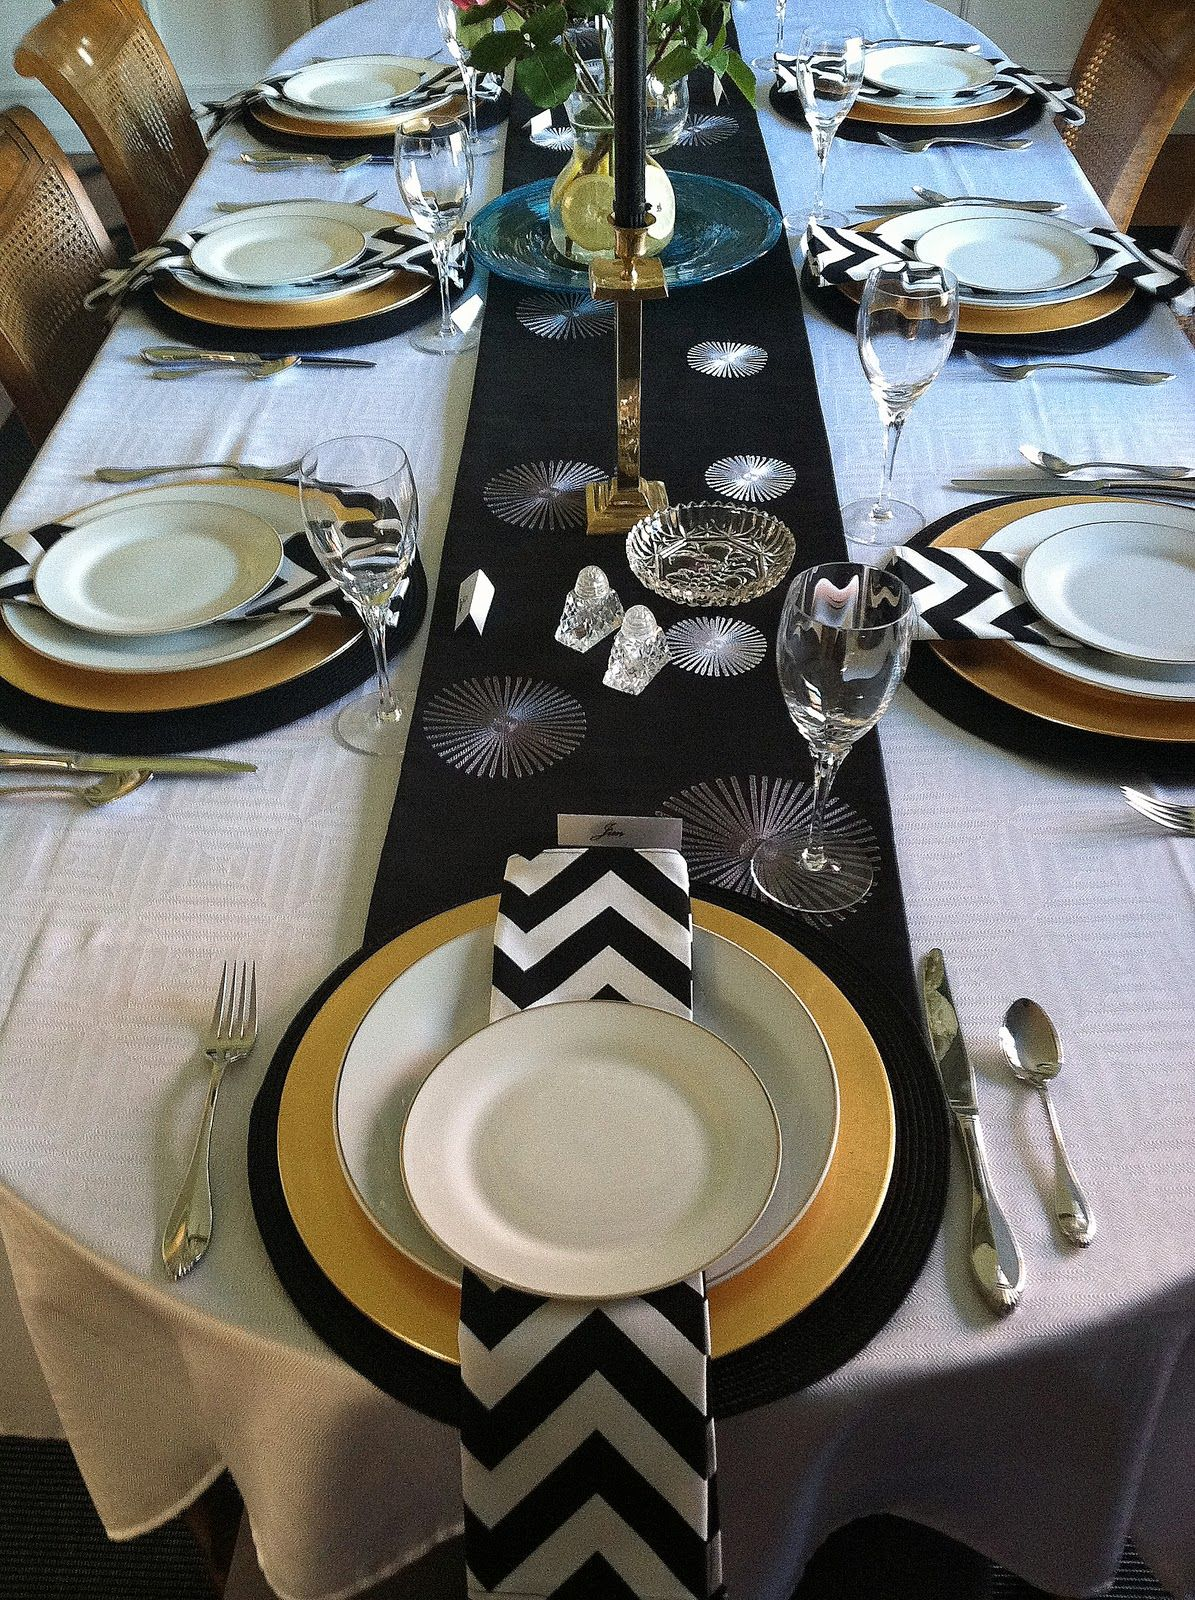 Color Scheme Black White And Gold Love The Black Runner With White Linens And Gold Rimmed Plate Gold Table Setting Table Settings Christmas Table Settings